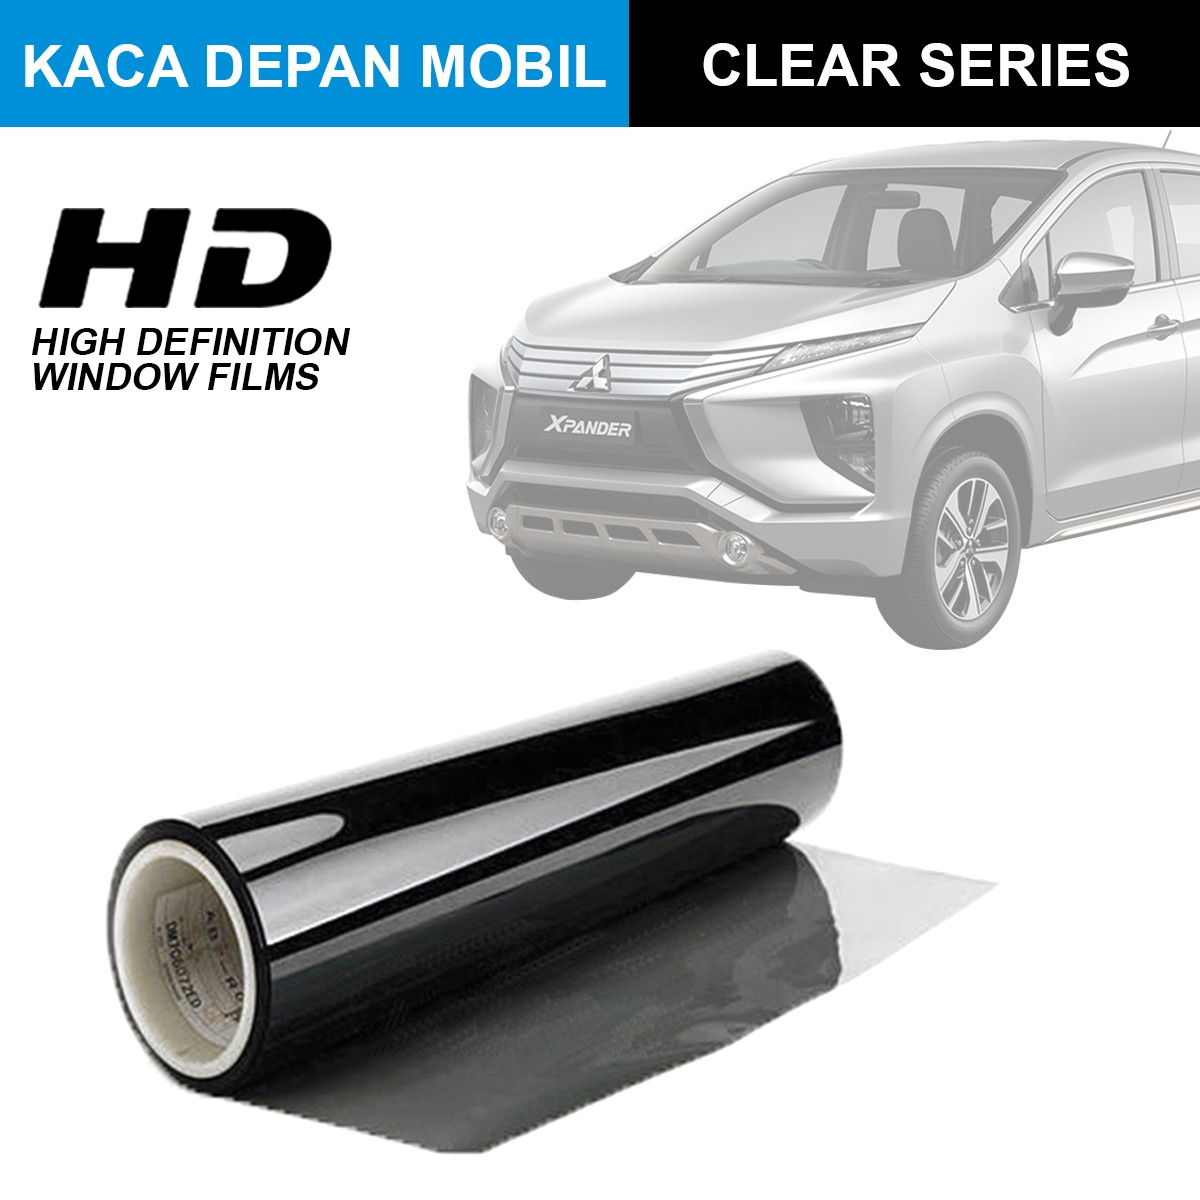 KACA FILM HIGH DEFINITION CLEAR SERIES - (MEDIUM CAR) KACA DEPAN